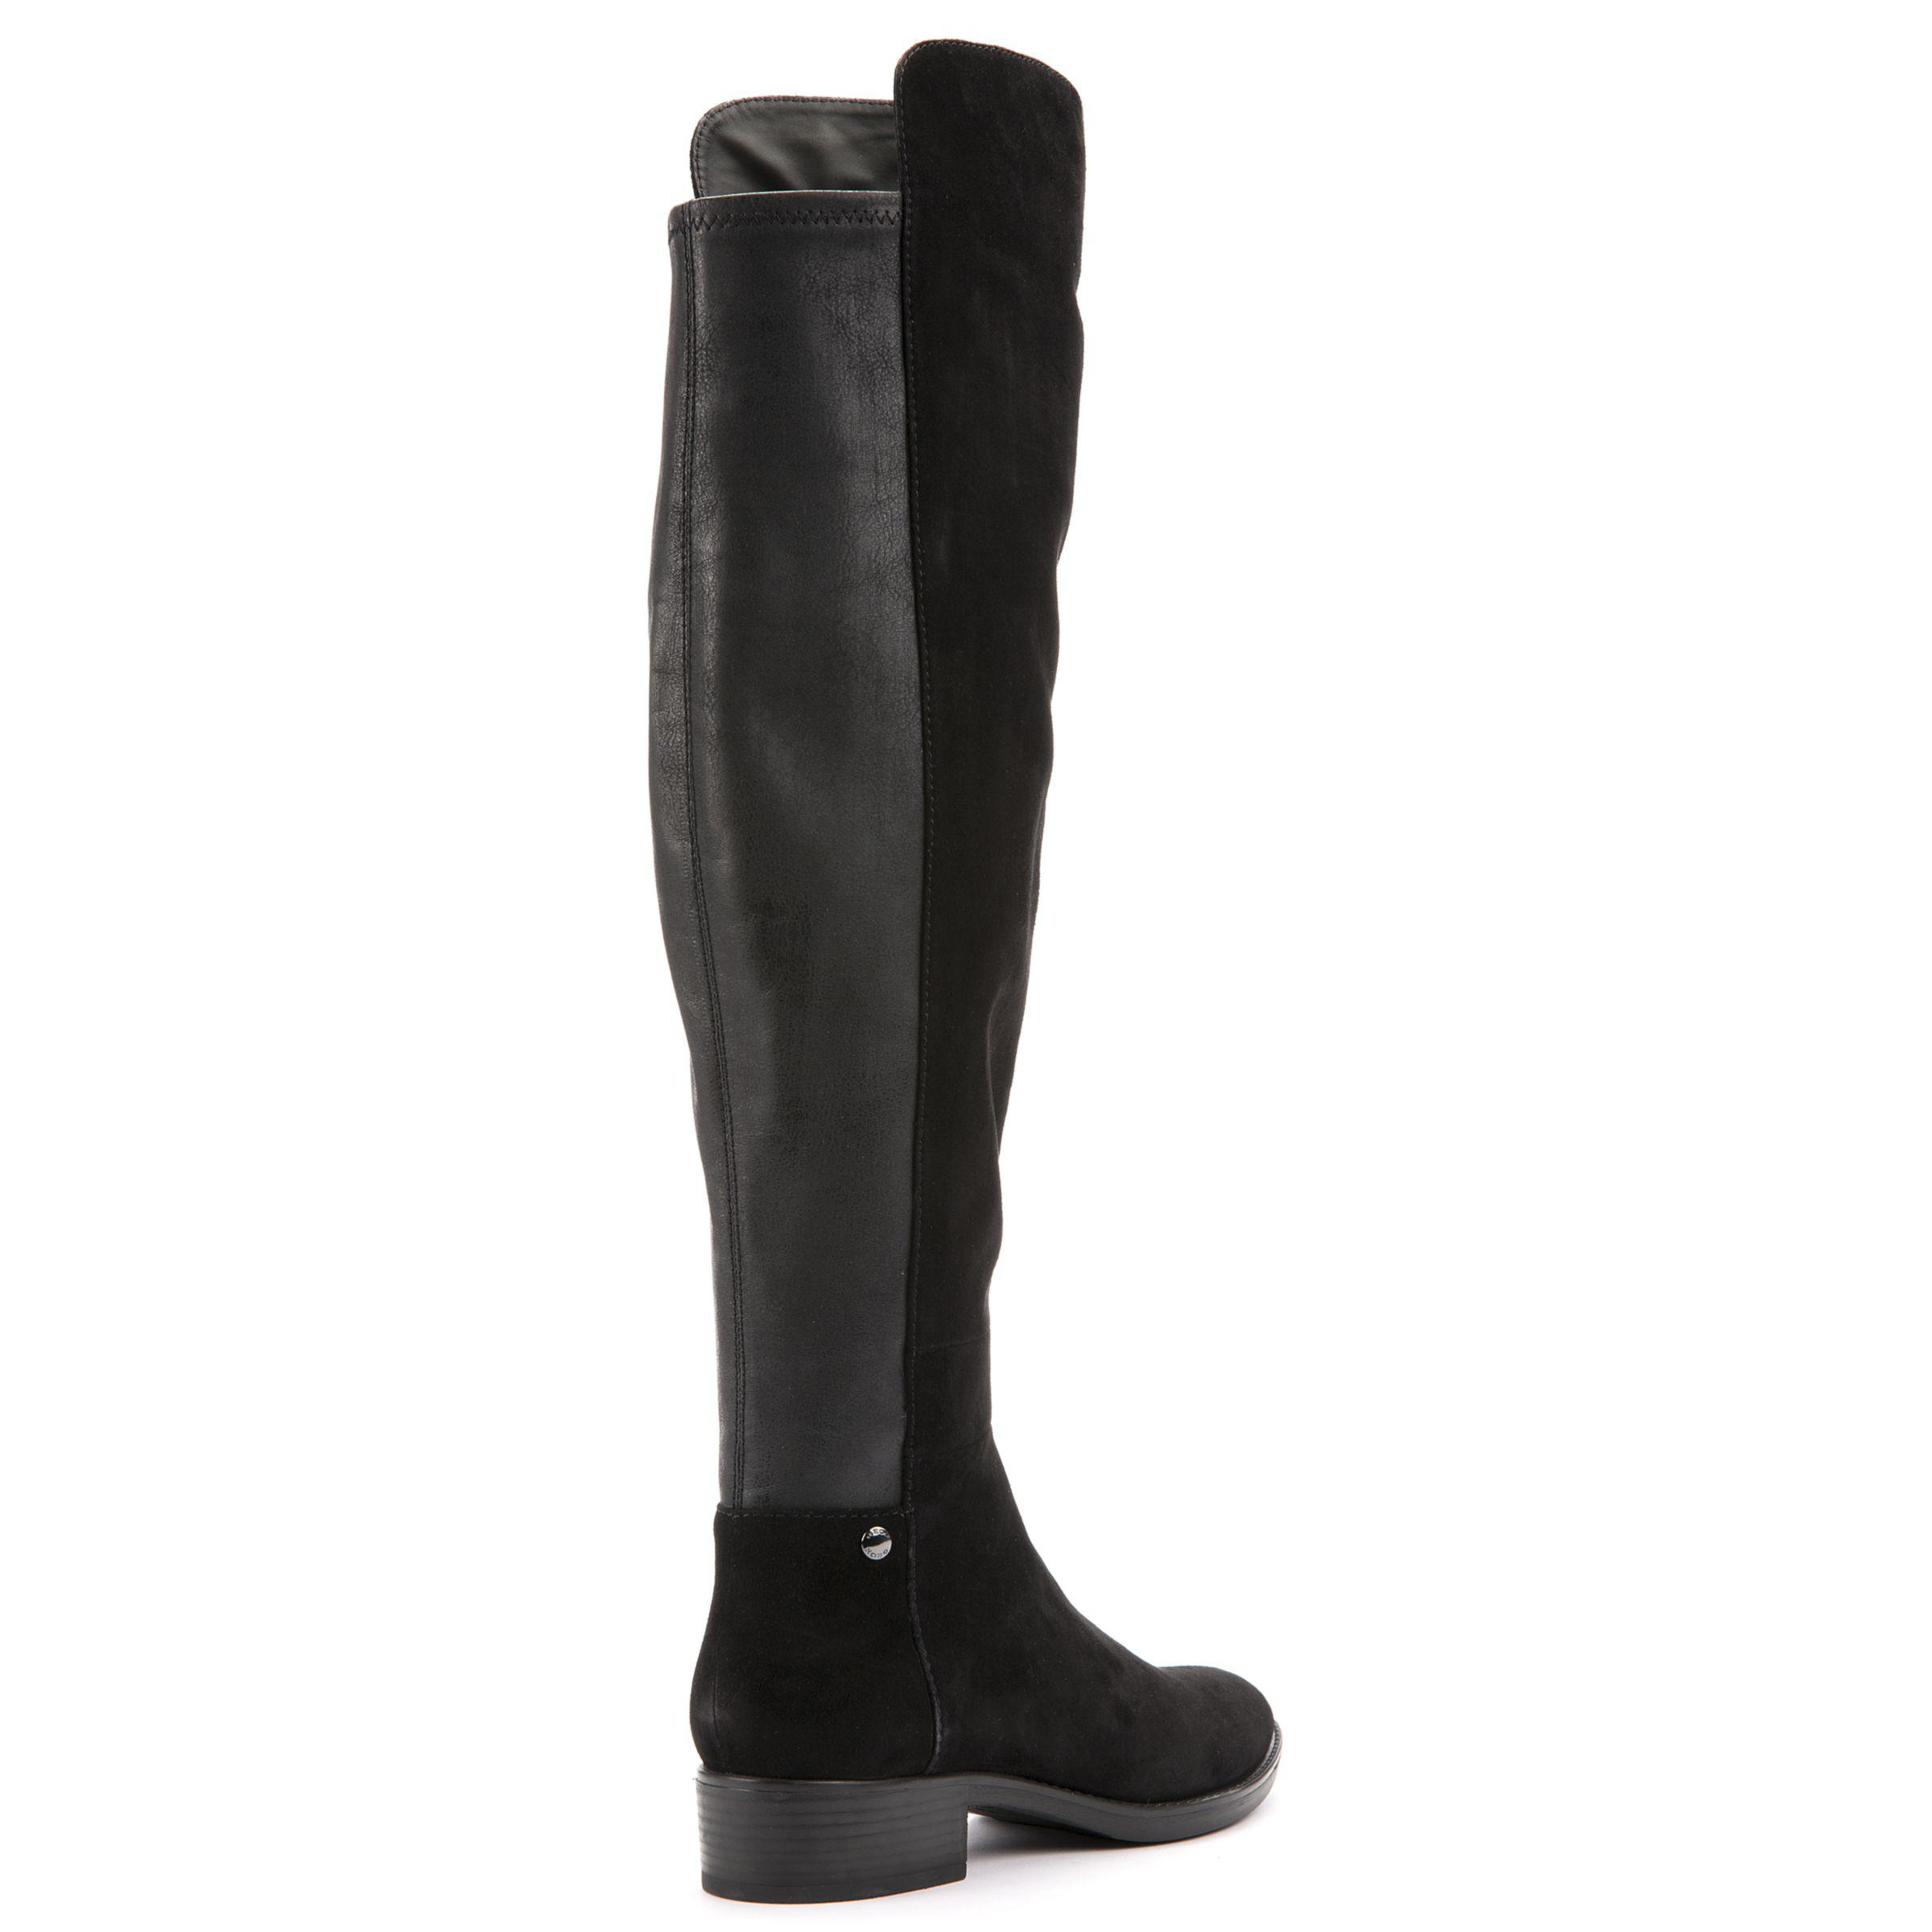 f8aba4d684 John Lewis Geox Felicity J Block Heeled Over The Knee Boots in Black ...